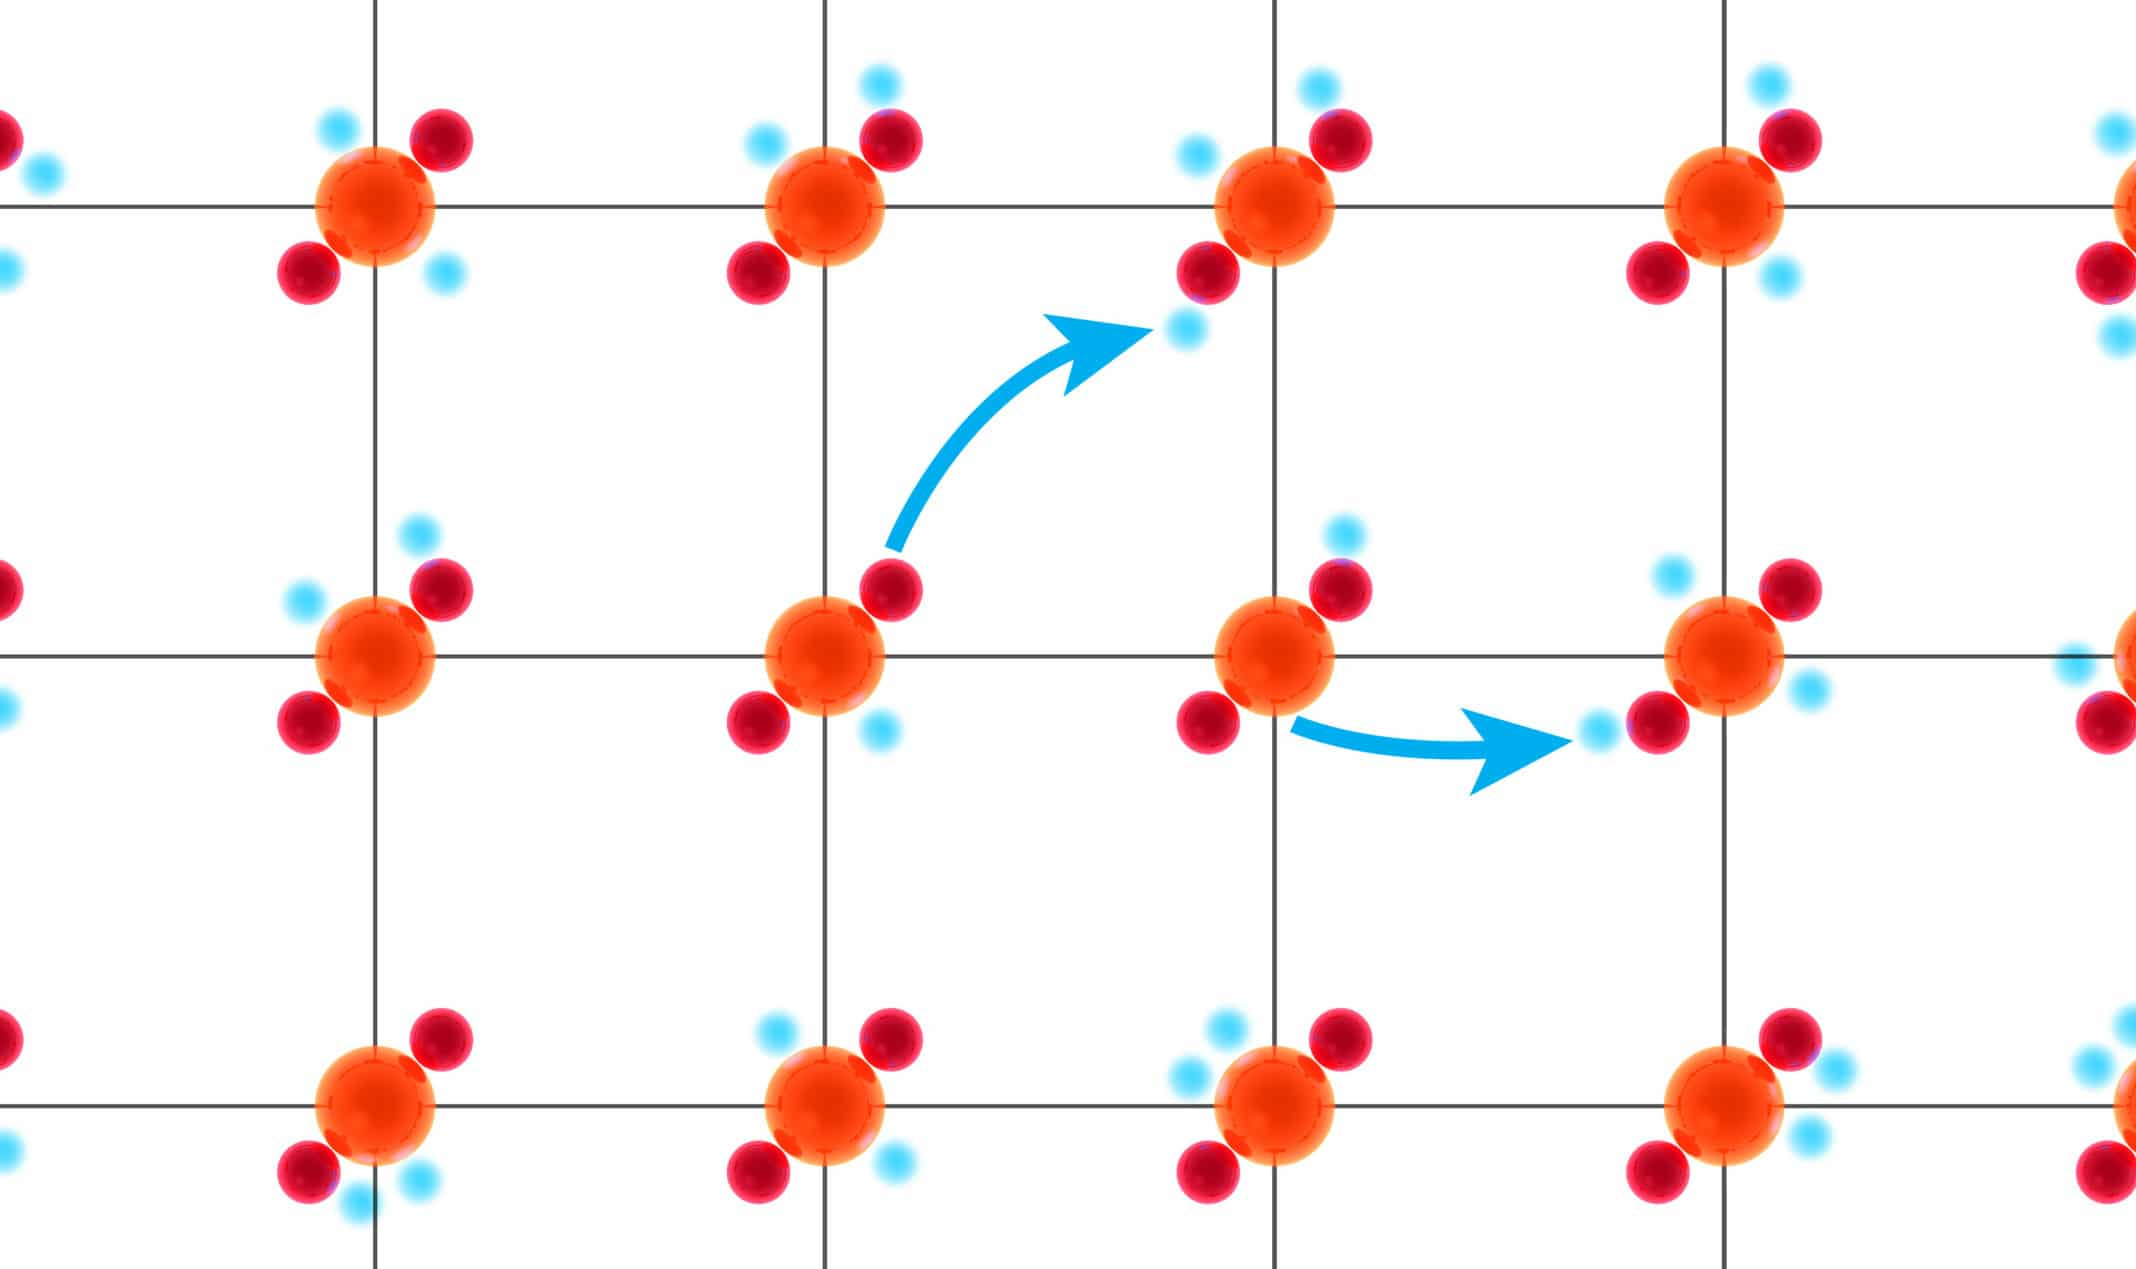 Computer simulations at SLAC and Stanford suggest a way to turn superconductivity on and off in copper-based materials called cuprates: Tweak the chemistry of the materials so electrons hop from atom to atom in a particular pattern – as if hopping to the atom diagonally across the street rather than to the one next door. This grid of simulated atoms illustrates the idea. Copper atoms are in orange, oxygen atoms are in red and electrons are in blue. (Greg Stewart/SLAC National Accelerator Laboratory)